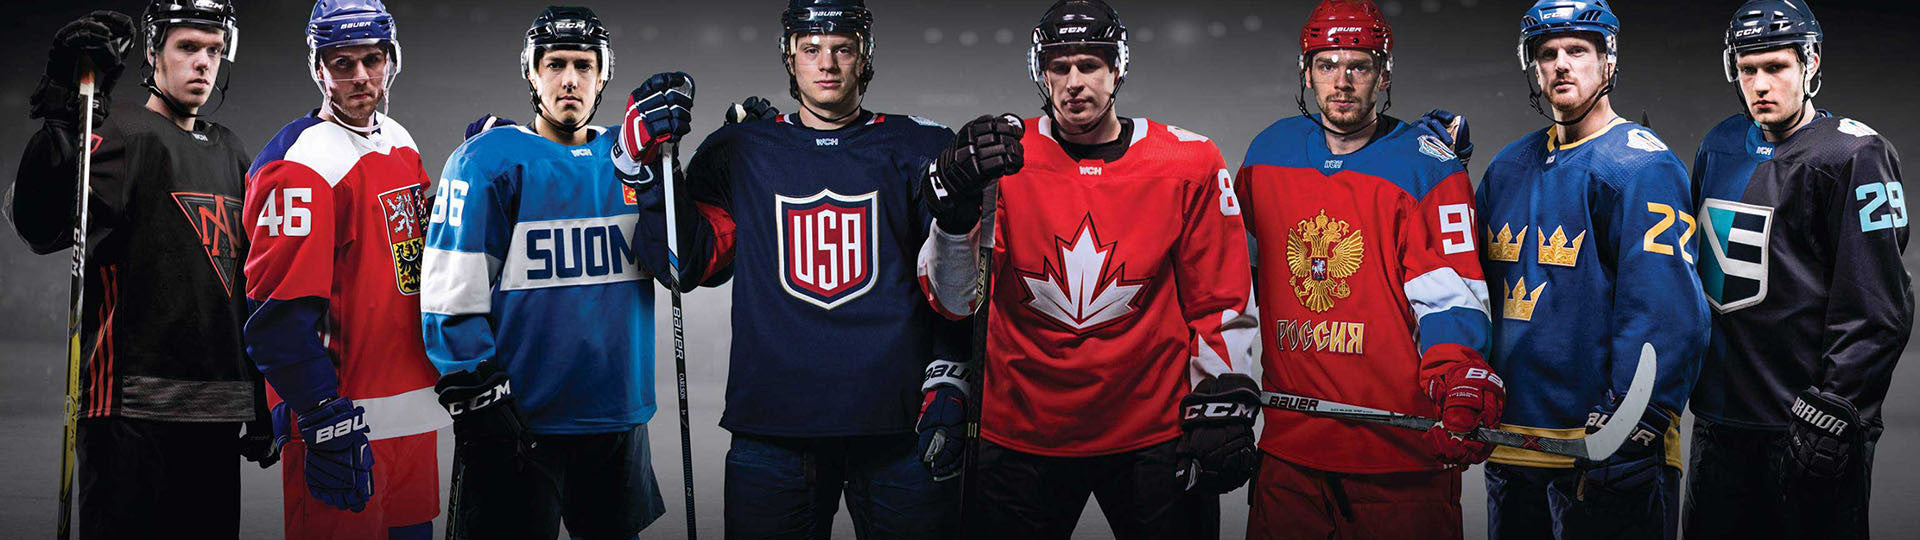 World Cup of Hockey Jerseys